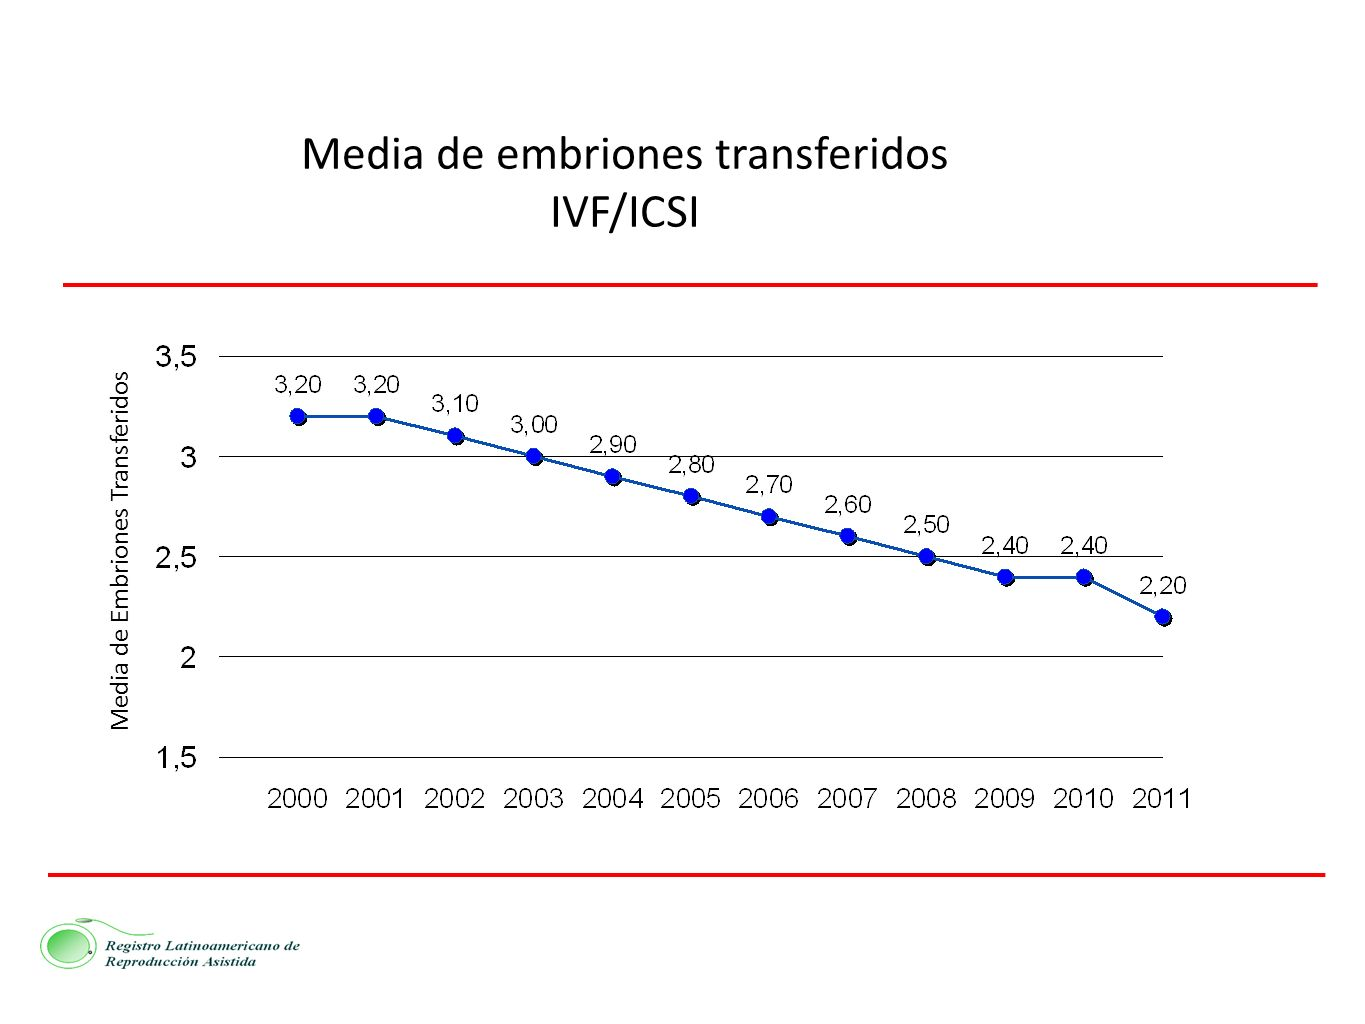 Media de embriones transferidos IVF/ICSI